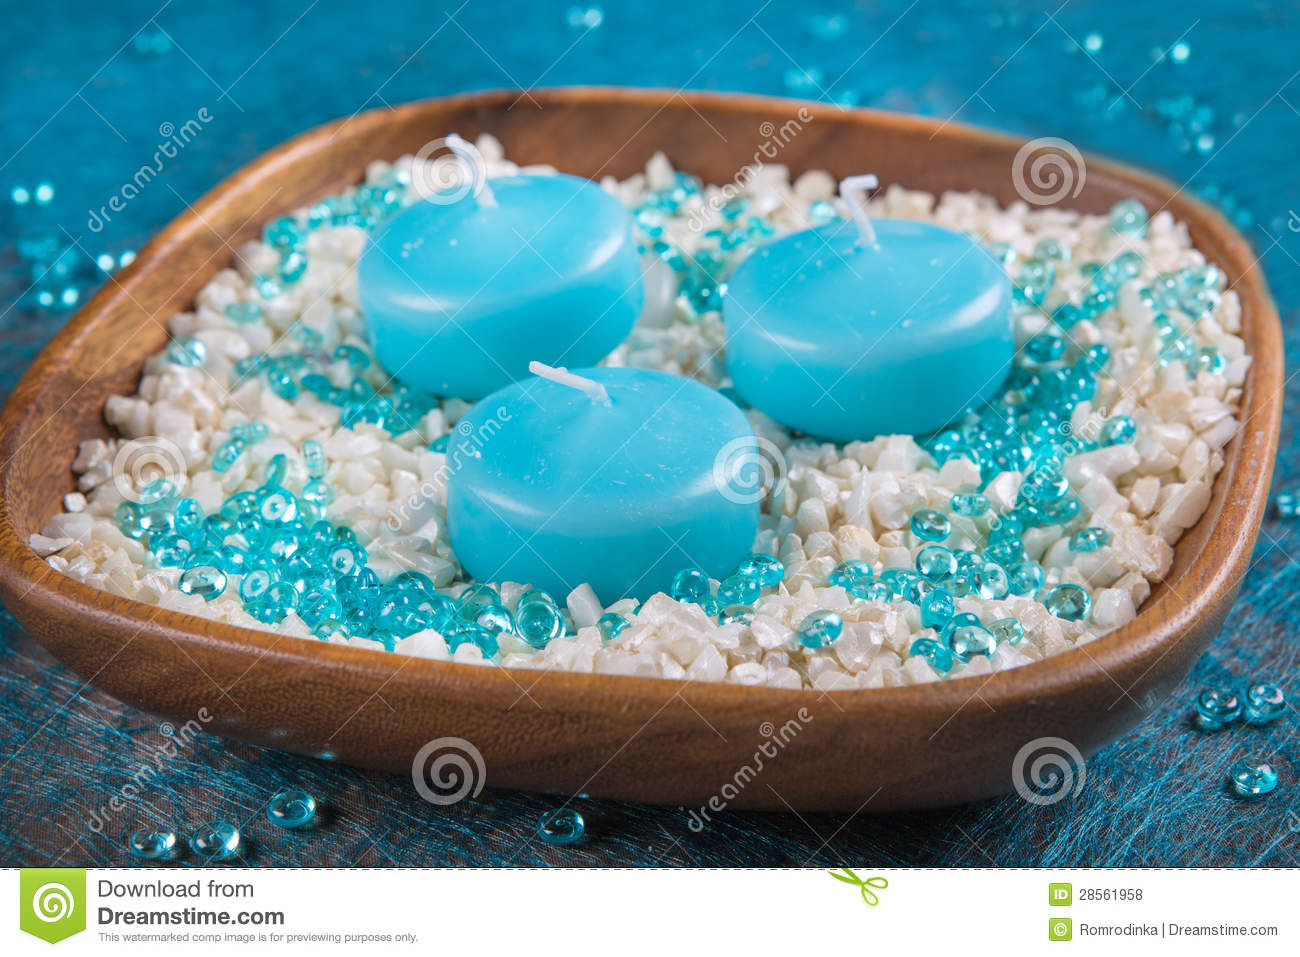 #0996B6 Decoration Of Turquoise Candles And White Sand Royalty  6095 decoration de noel turquoise 1300x957 px @ aertt.com